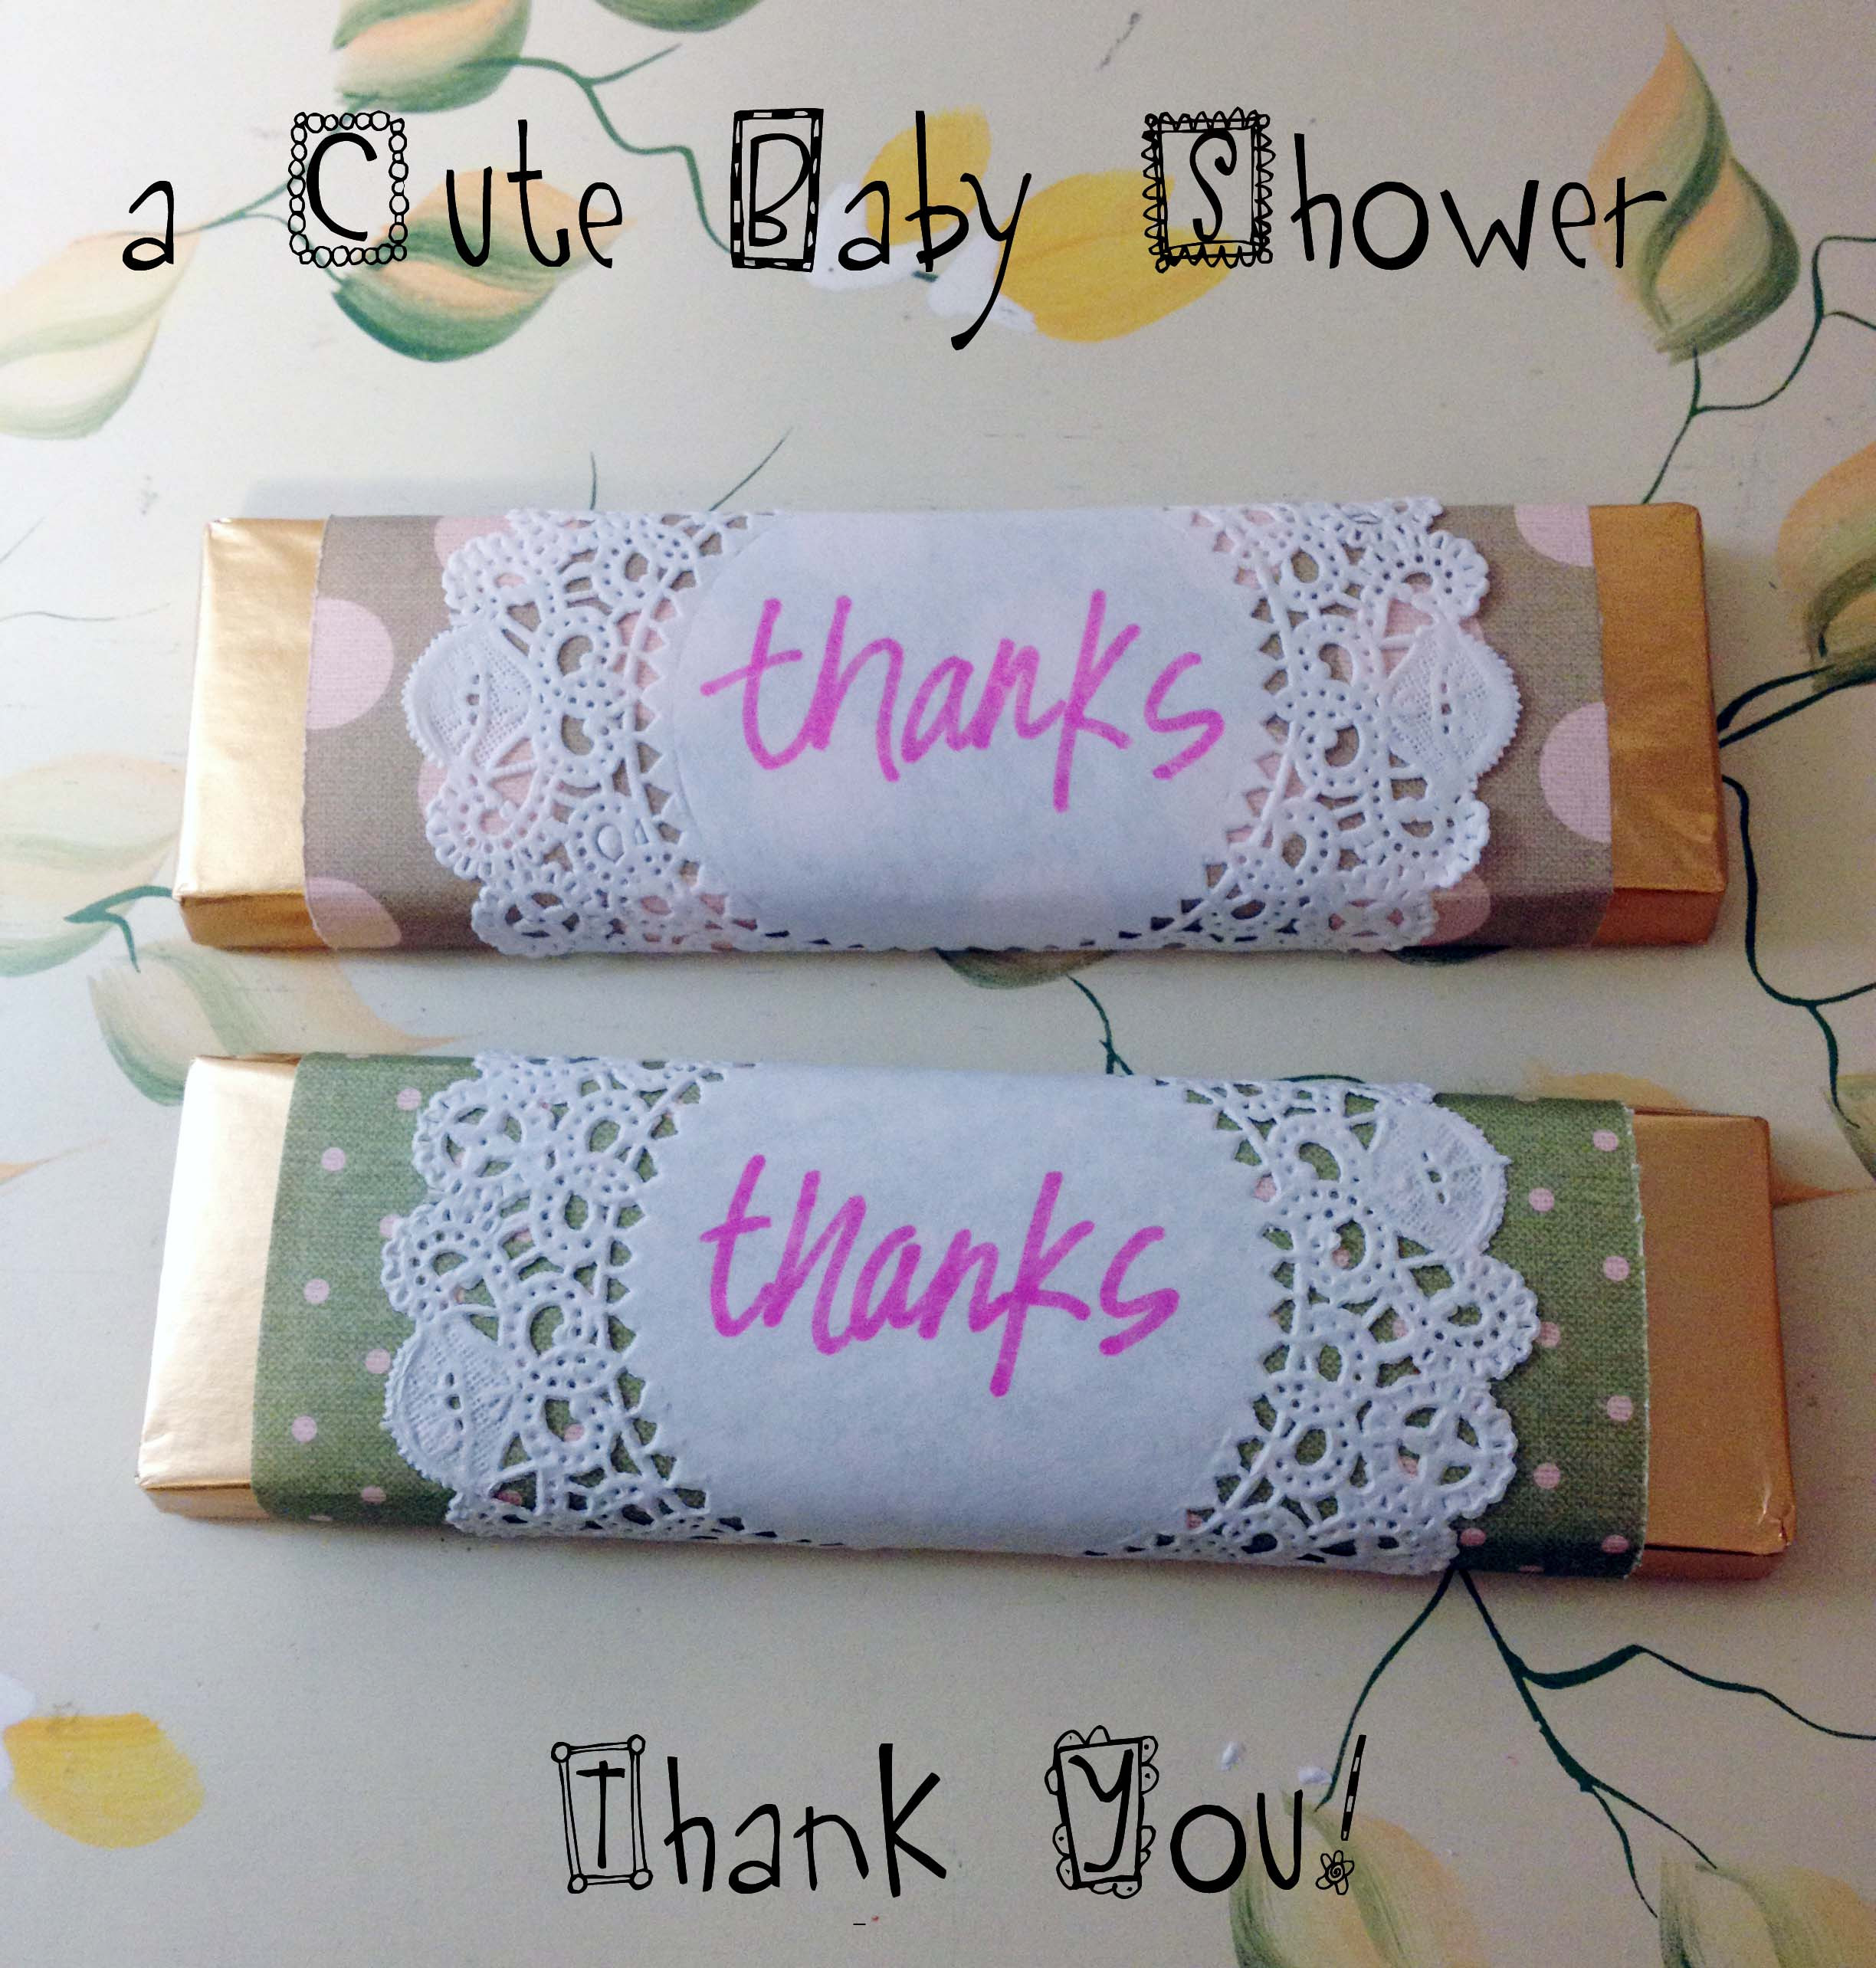 Thank You Gift Ideas For Baby Shower  Diy A Cute Baby Image